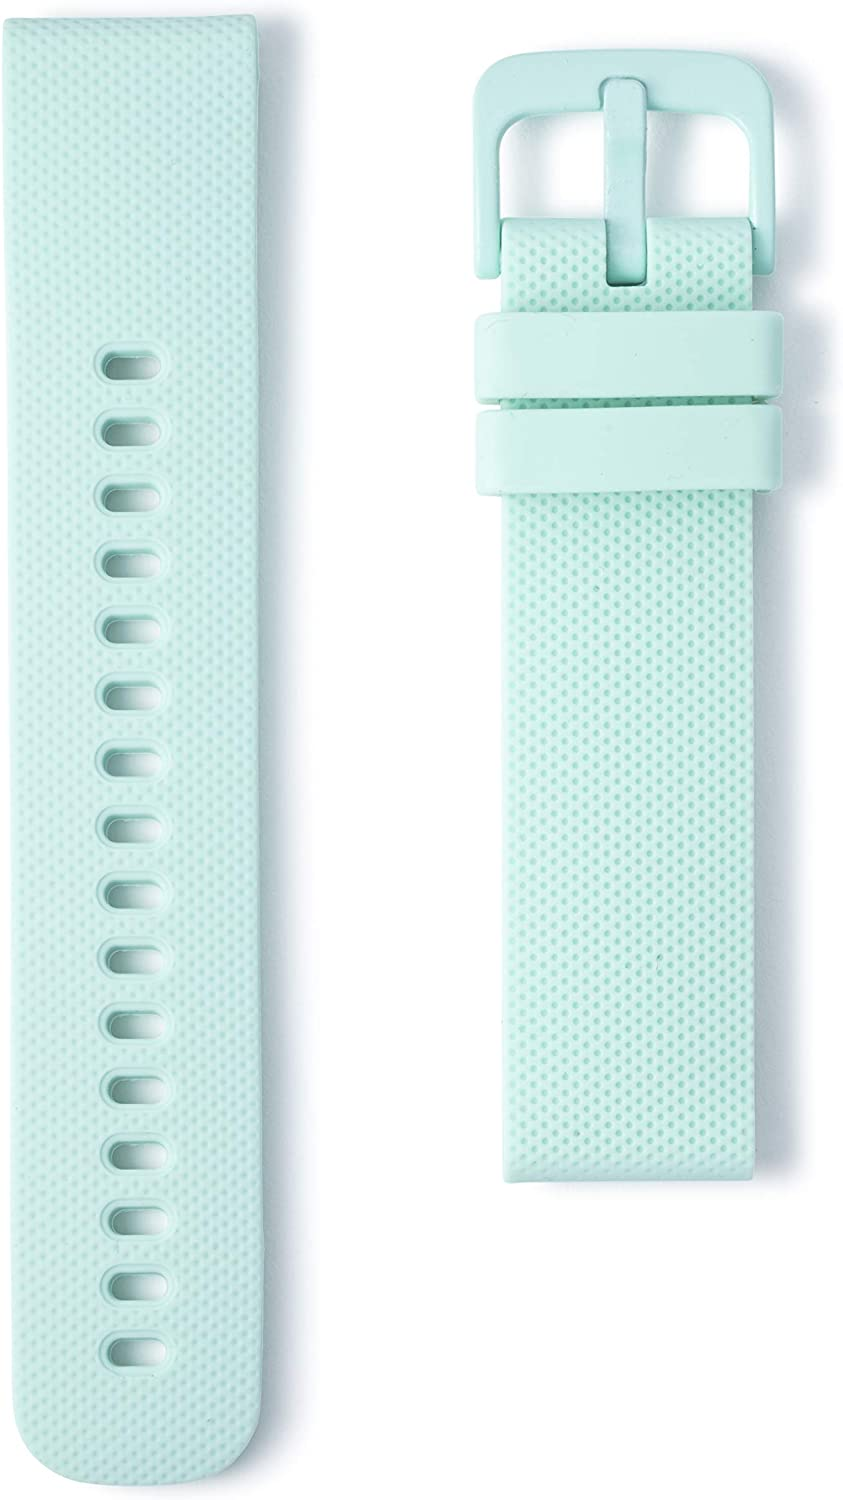 Compatible with Wristology Quick Release Easy Change Replacement Soft Silicone Rubber Watch Band Strap for Men Women - Choose Color and Width - 18mm, 20mm, 22mm